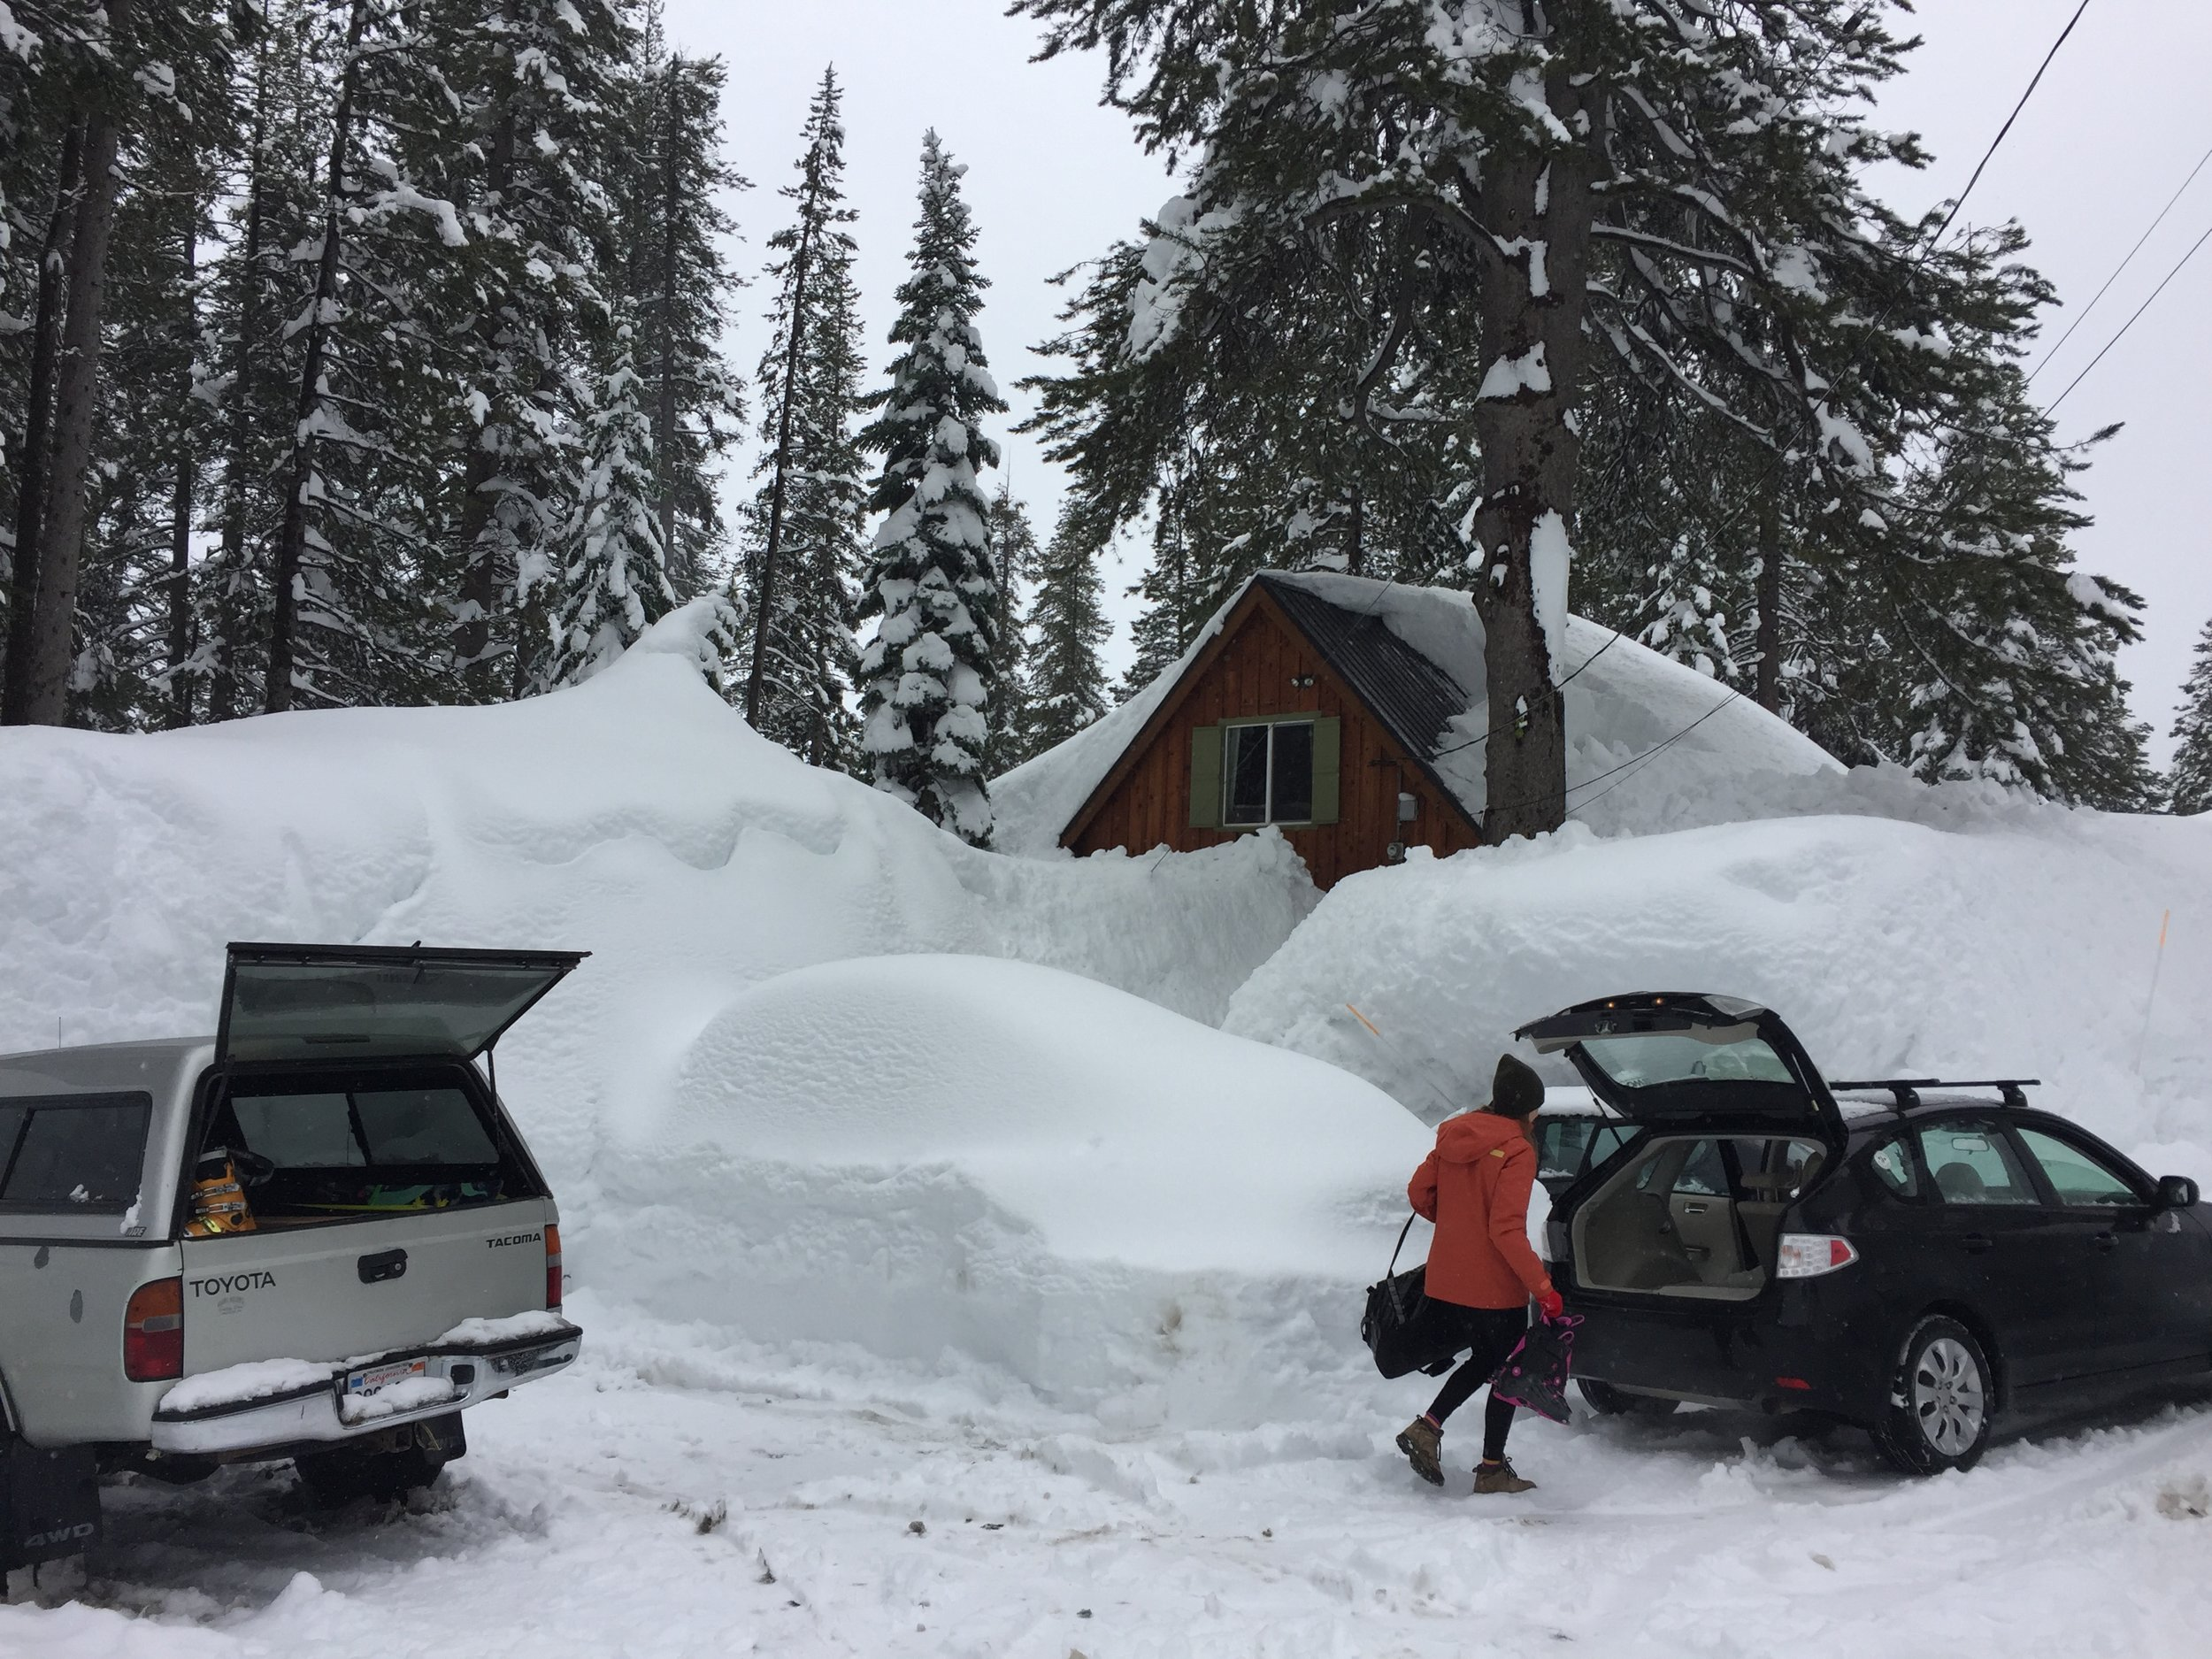 March 2, 2019 — The first story of the house is completely buried … as is the car in the foreground.